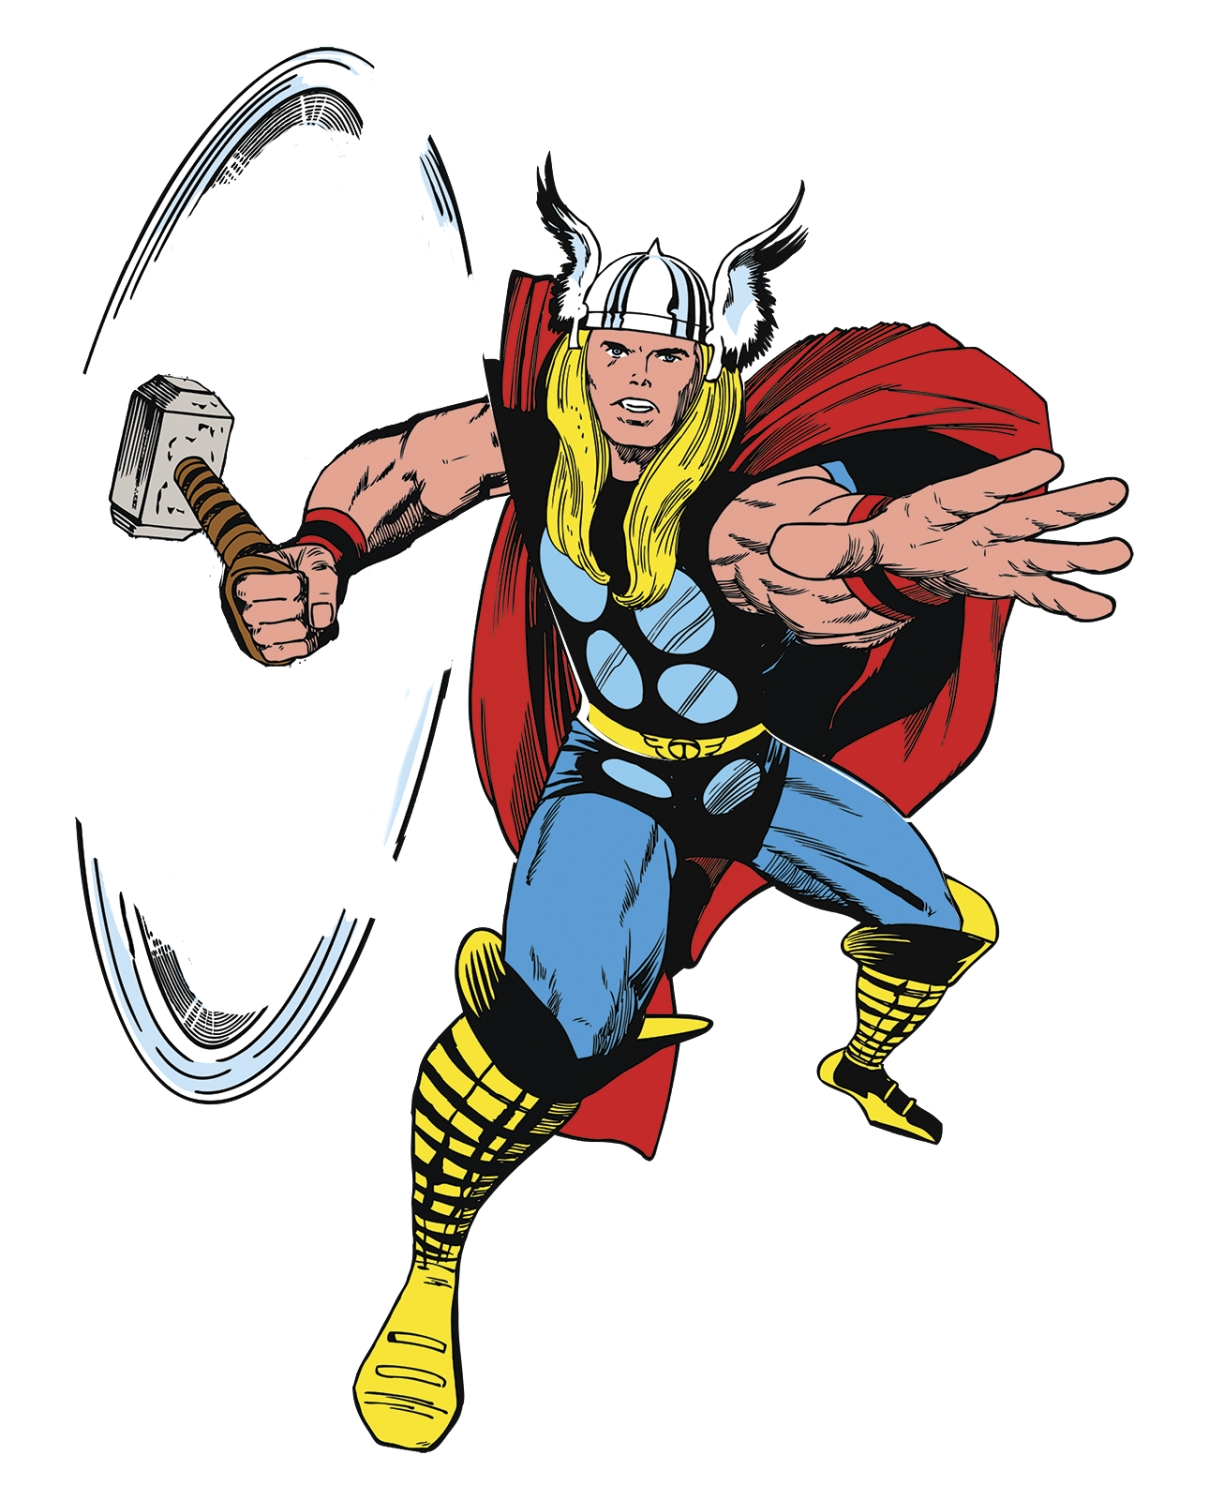 clip transparent stock The best free images. Thor clipart classic